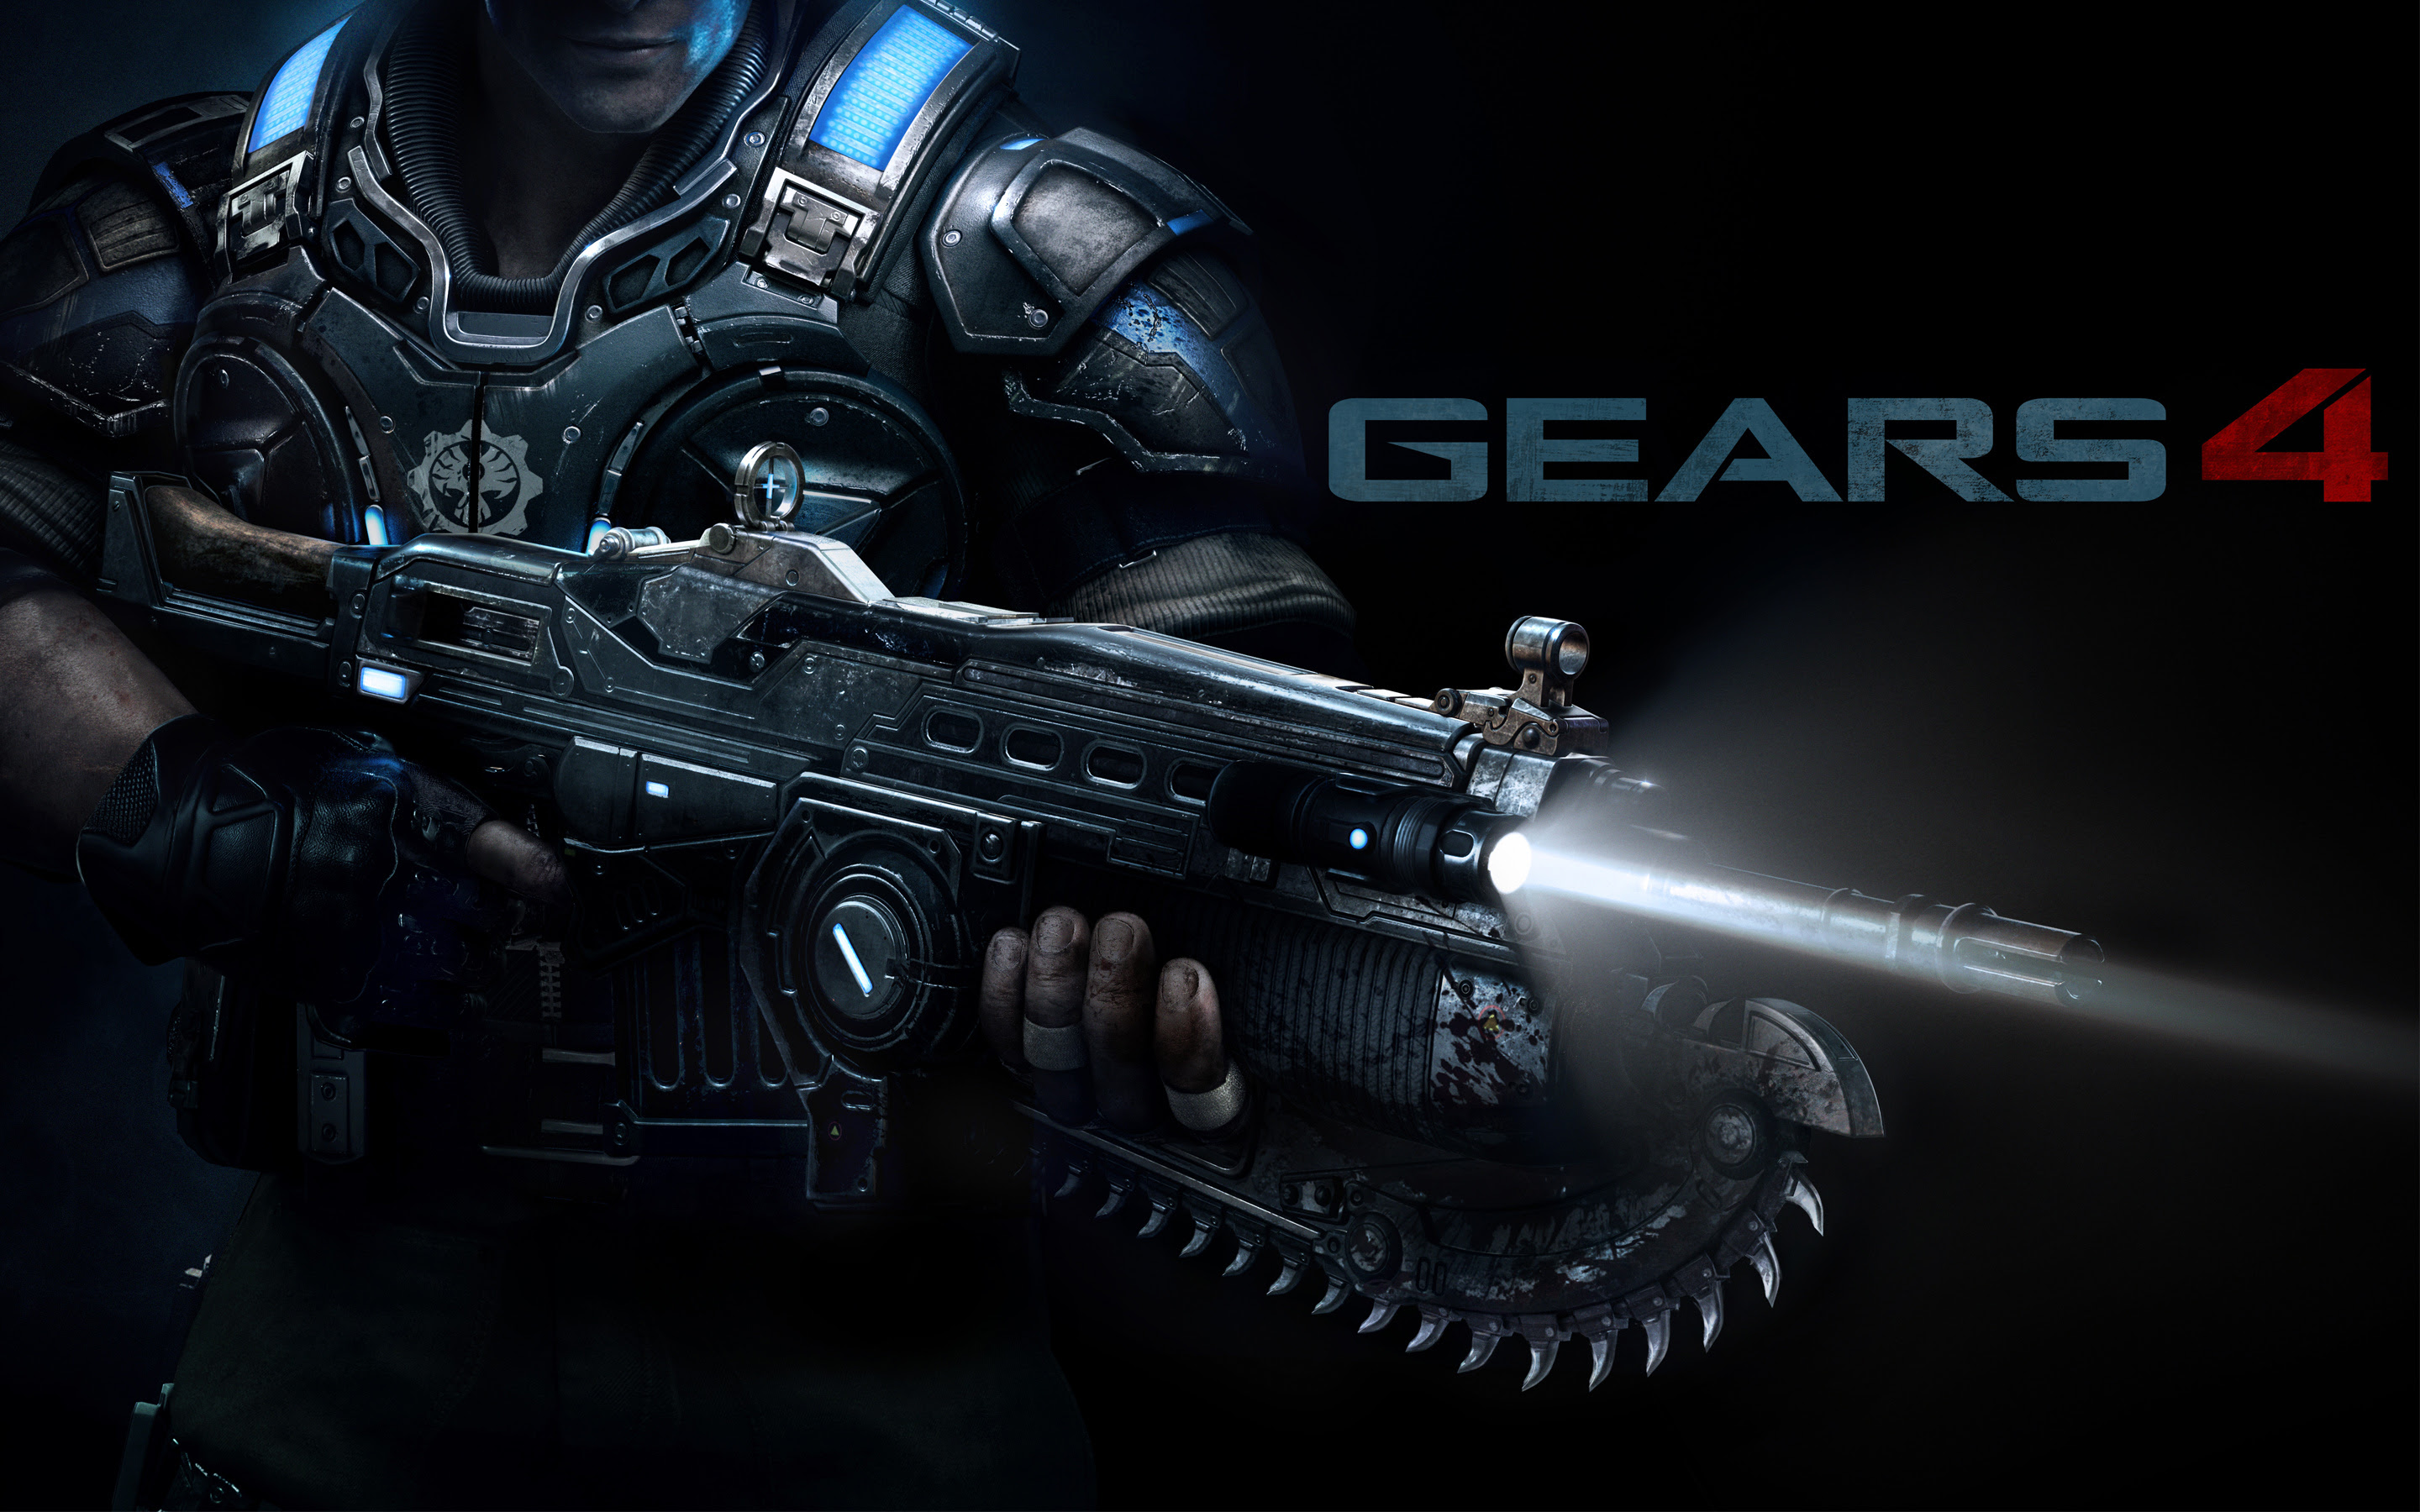 Gears Of War 4 Wallpapers Wallpapers Hd